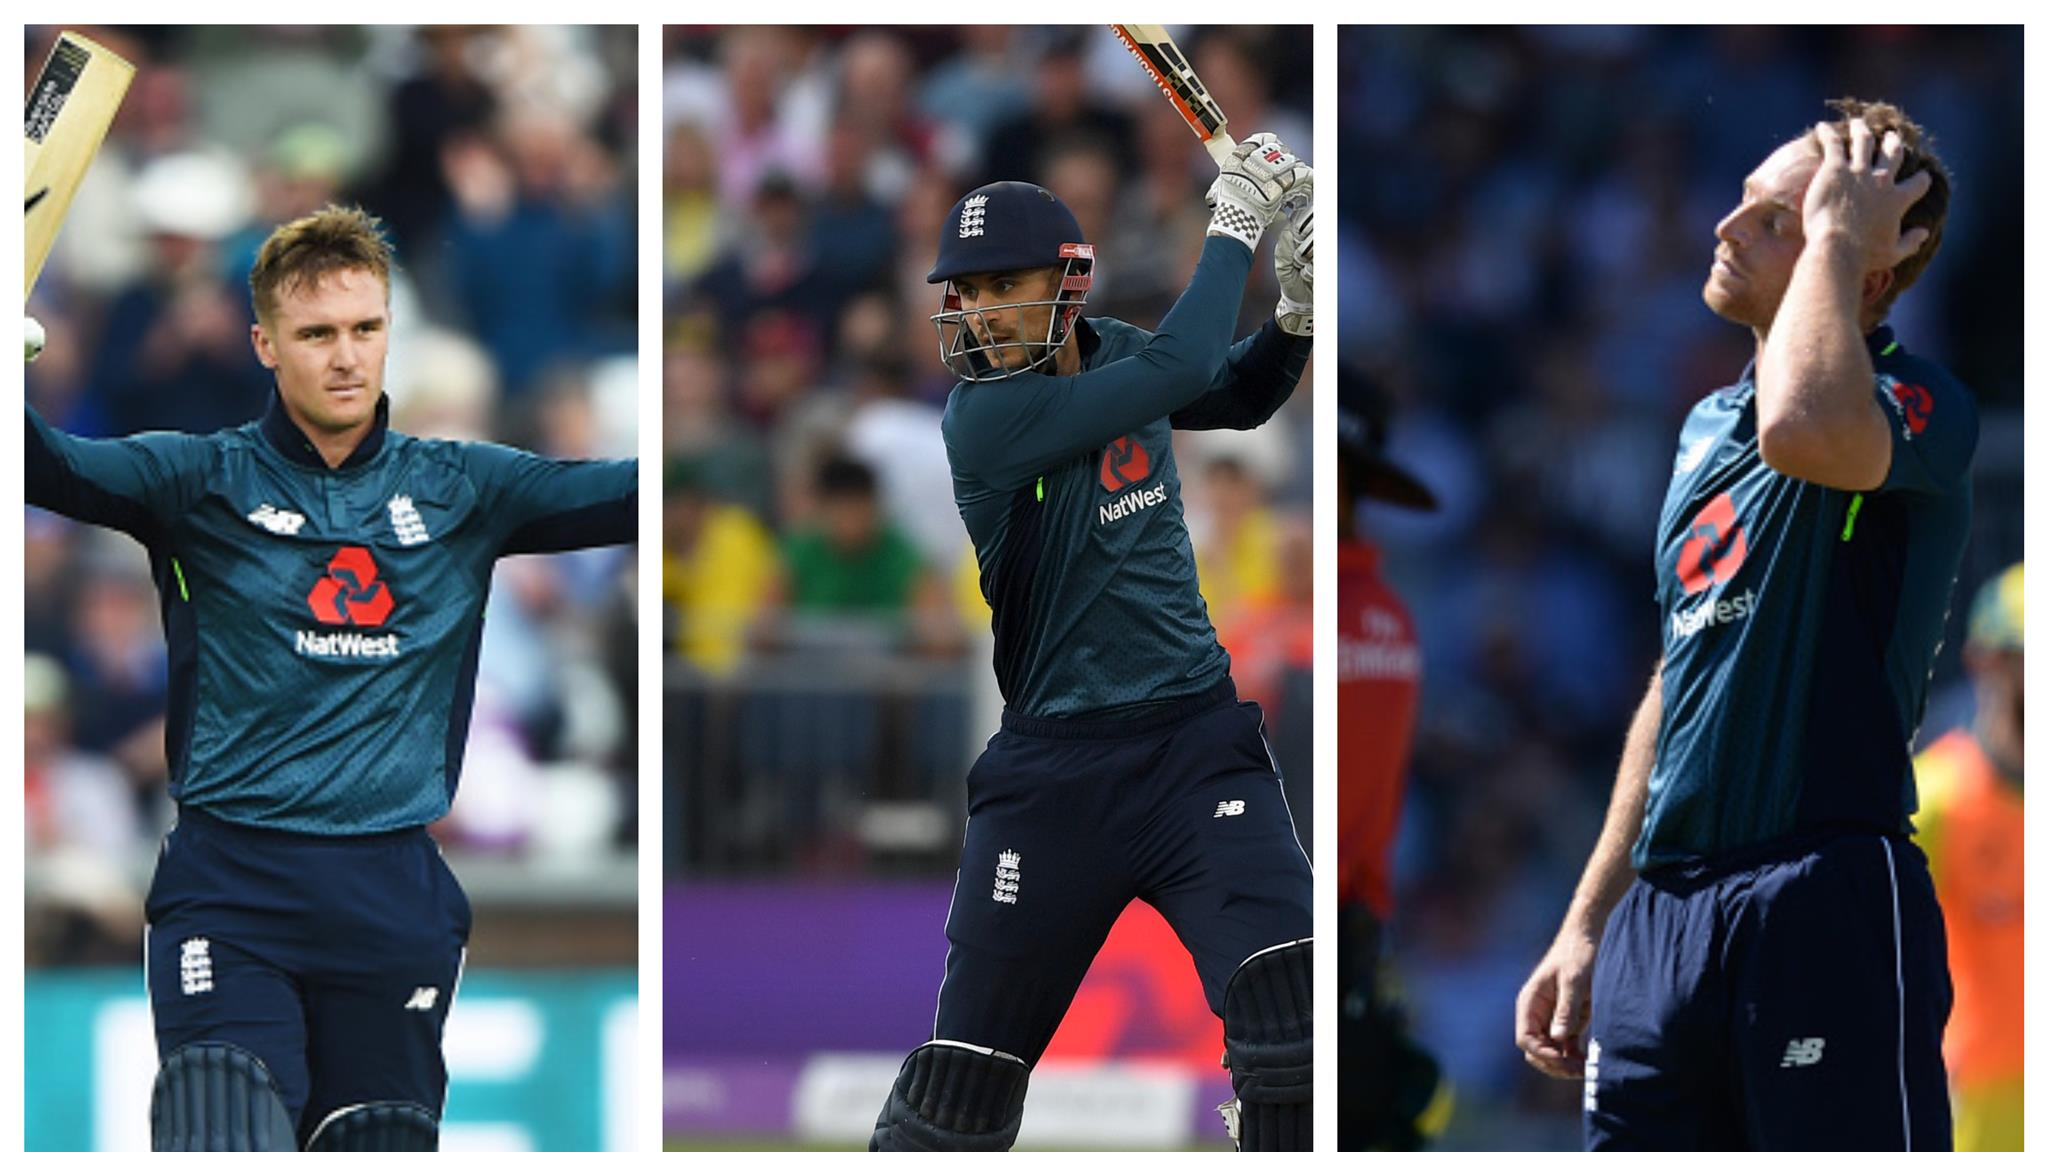 ENG v IND 2018: Key England batsman ruled out of Trent Bridge ODI with side strain